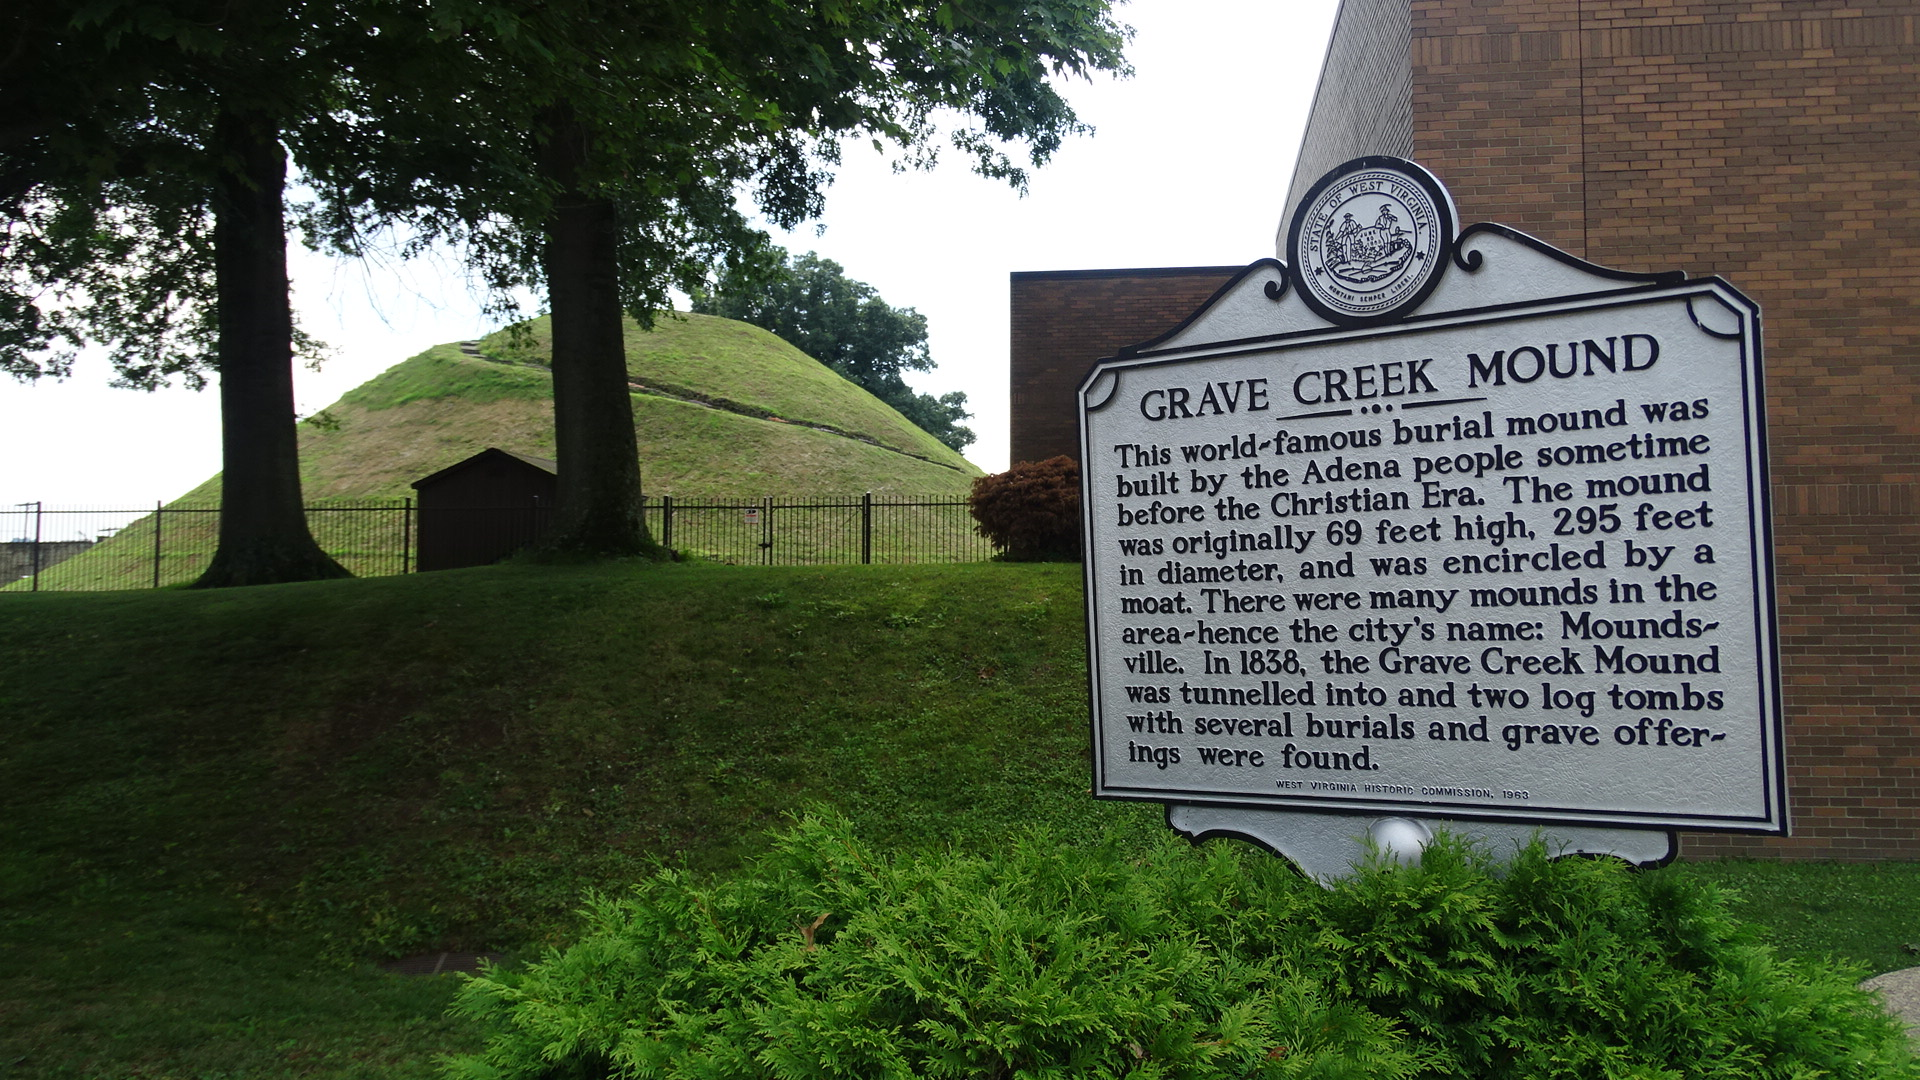 Grave Creek Mound Historical Site